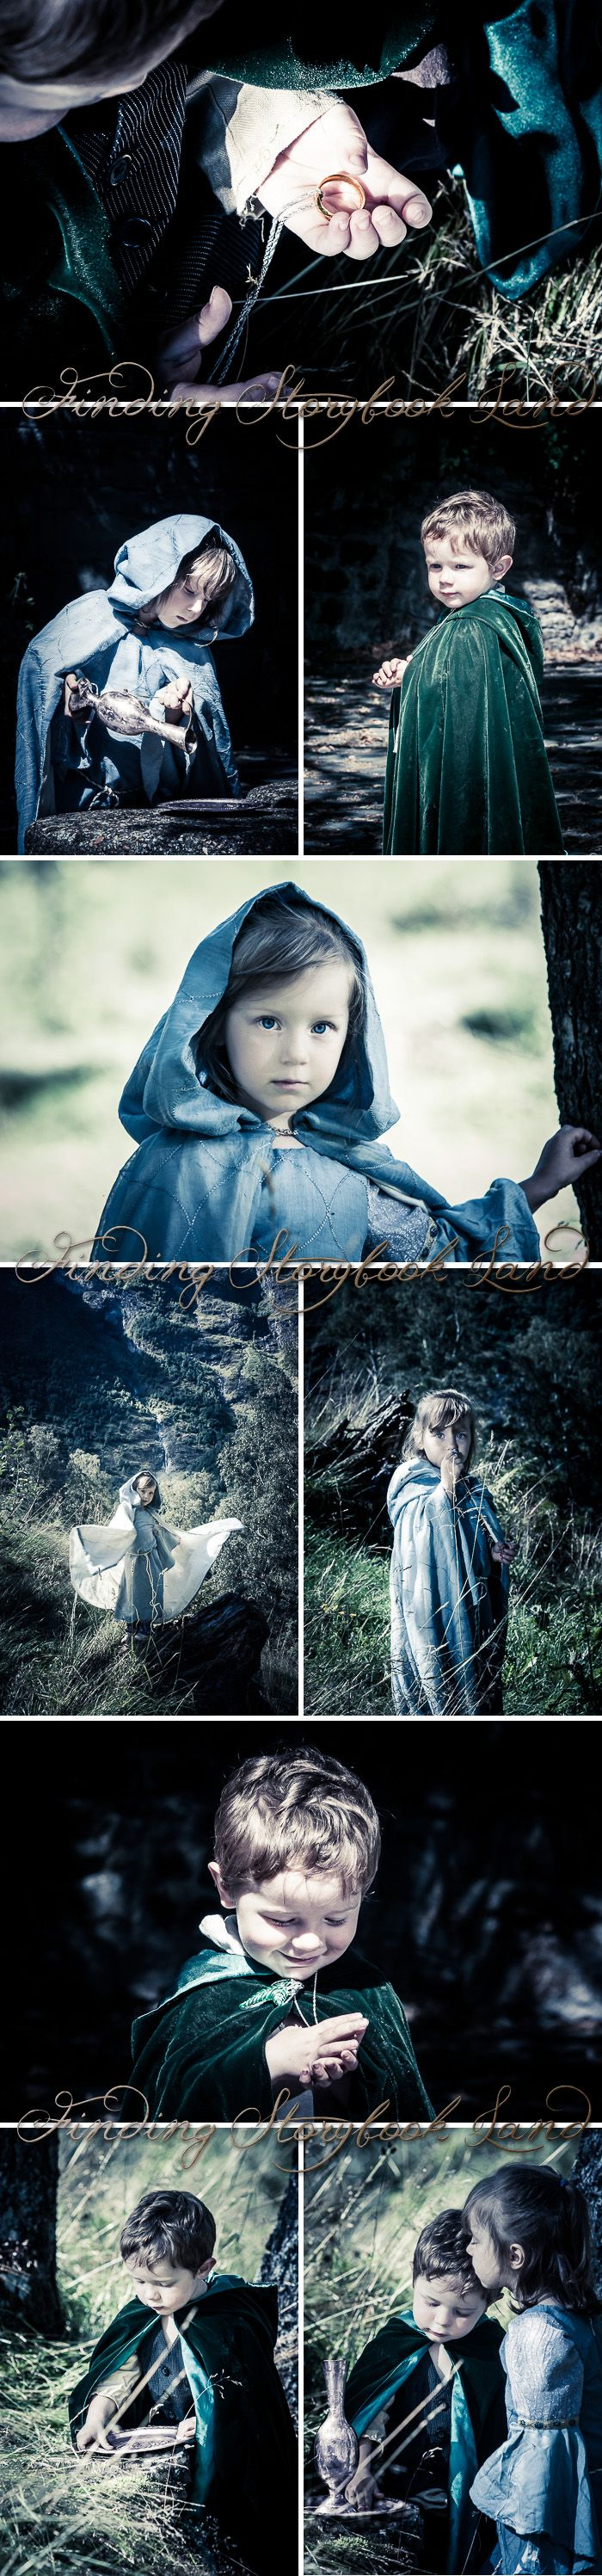 A basic guide on how to do a Lord of the Rings or Hobbit themed children's photo session with costume, prop, and location ideas and tutorials from findingstorybookland.com  Photography Ideas